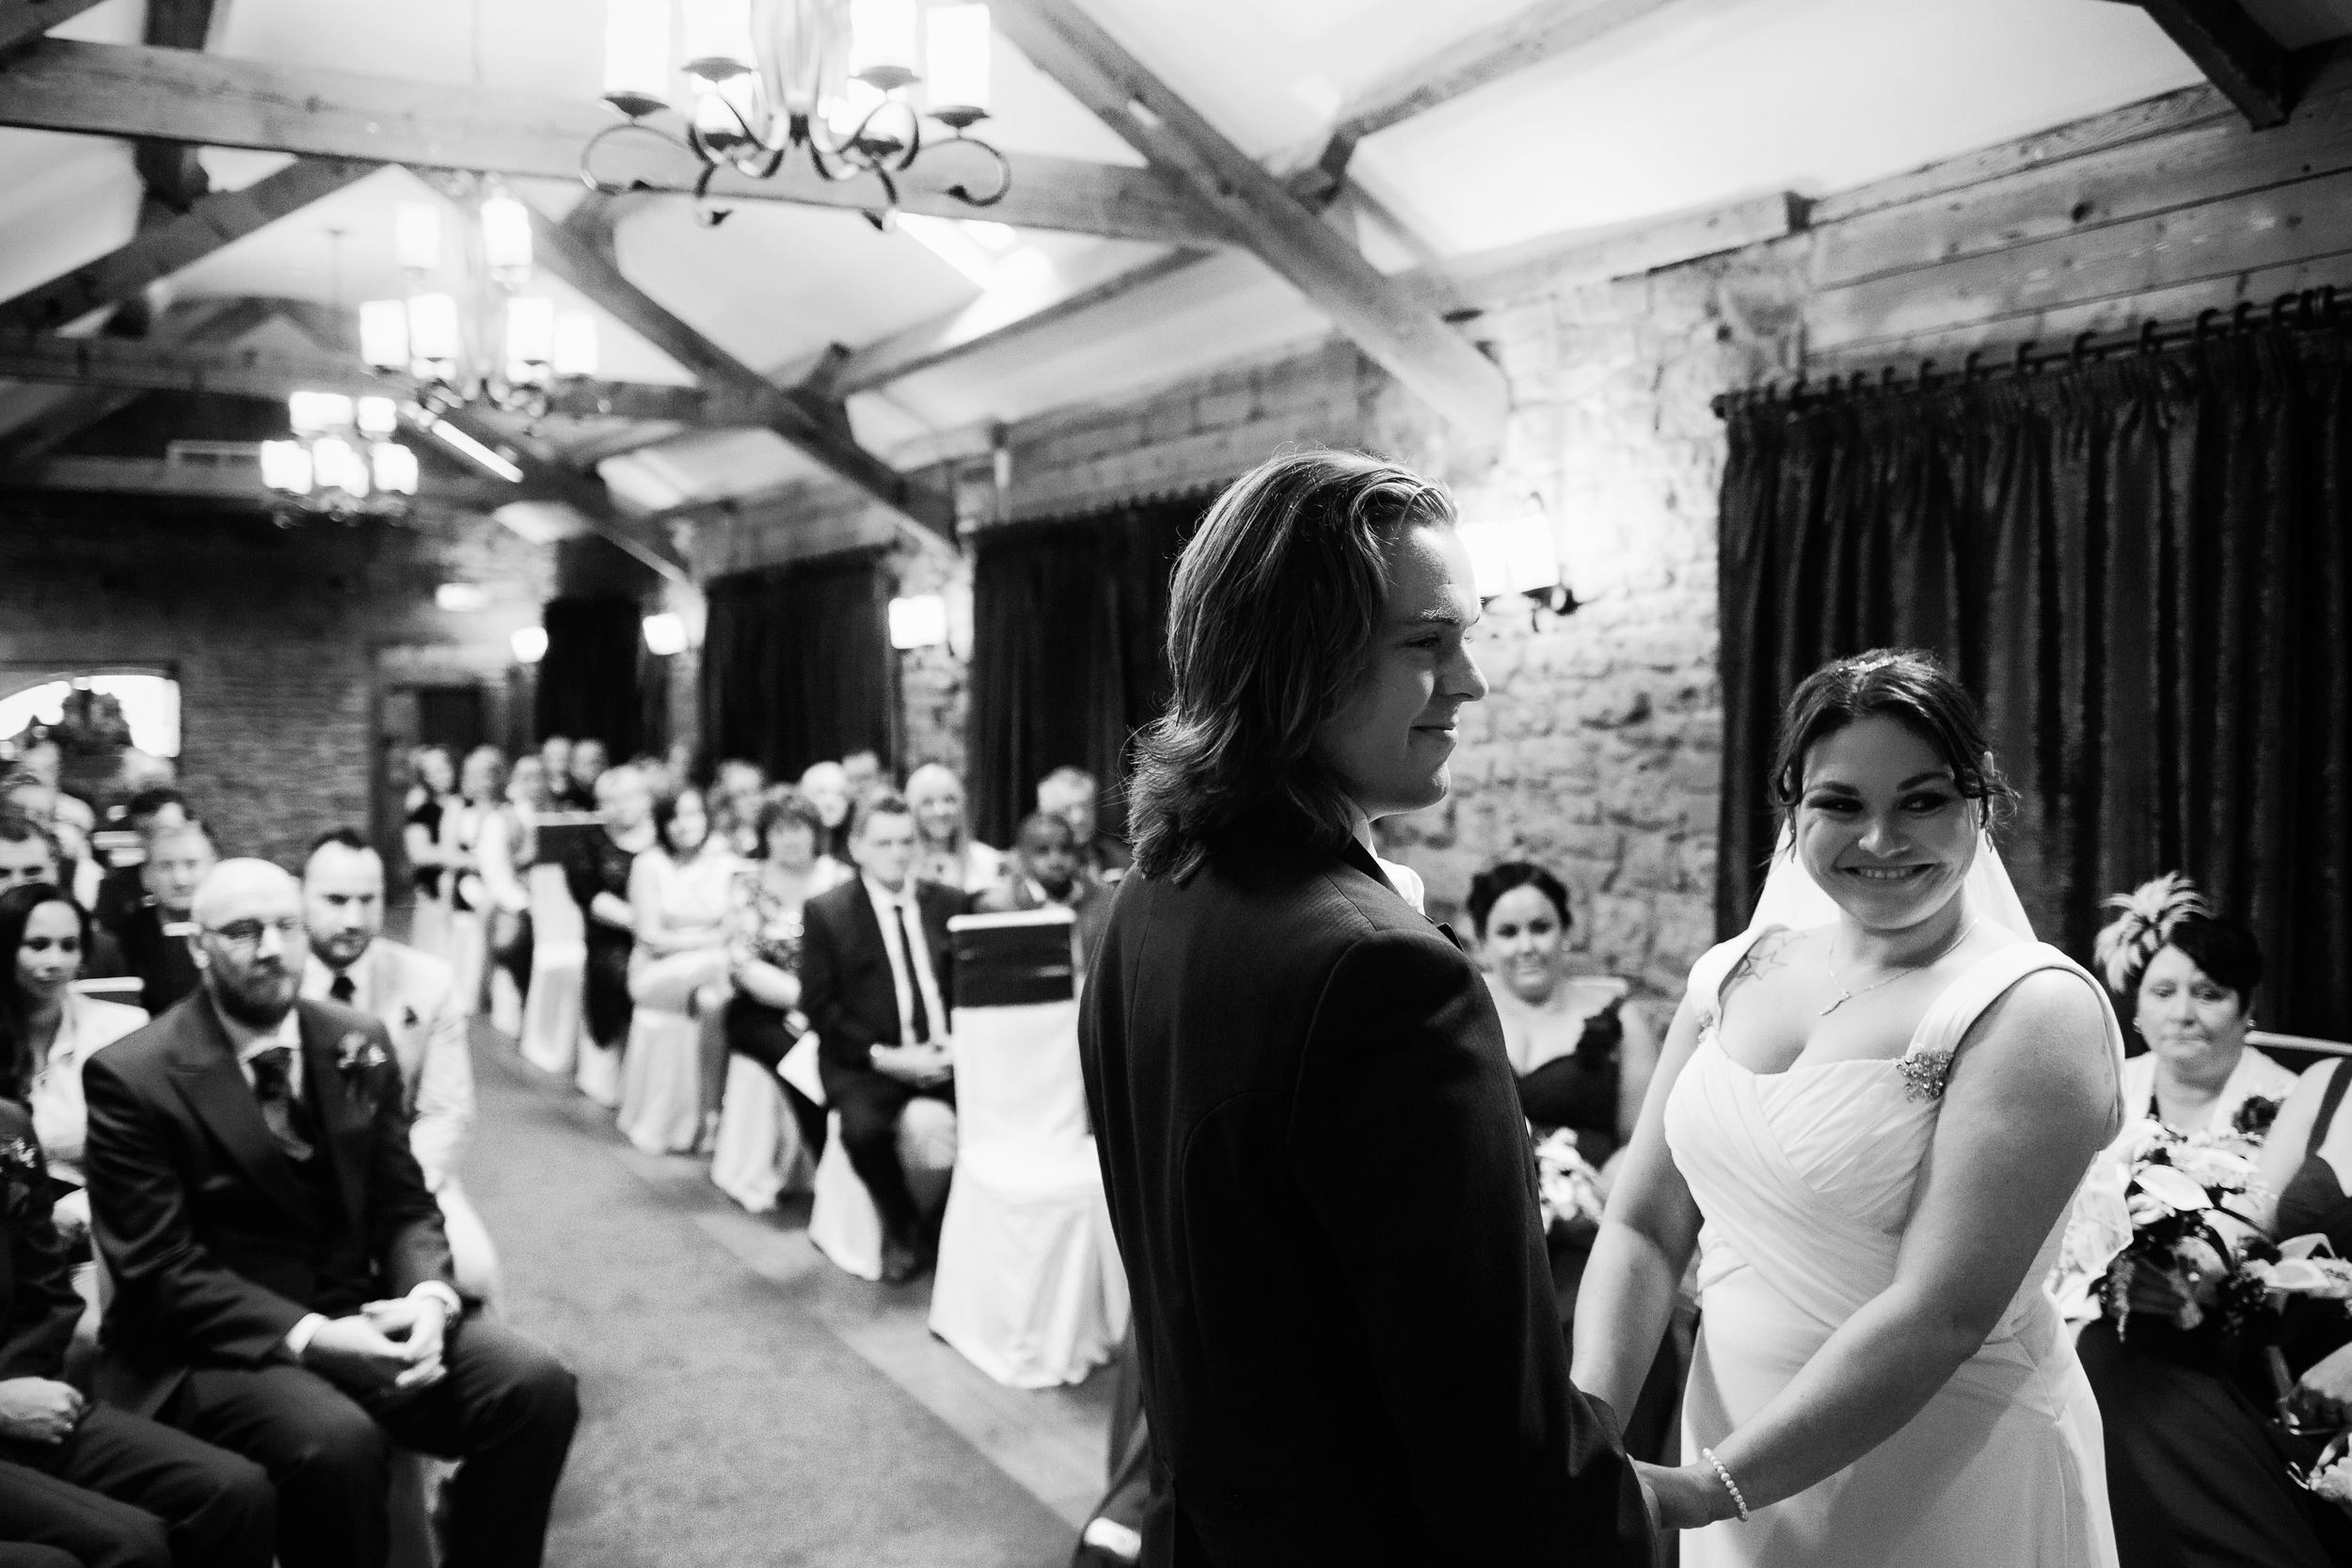 The bride and groom smile during their wedding ceremony at South Causey Inn, Durham